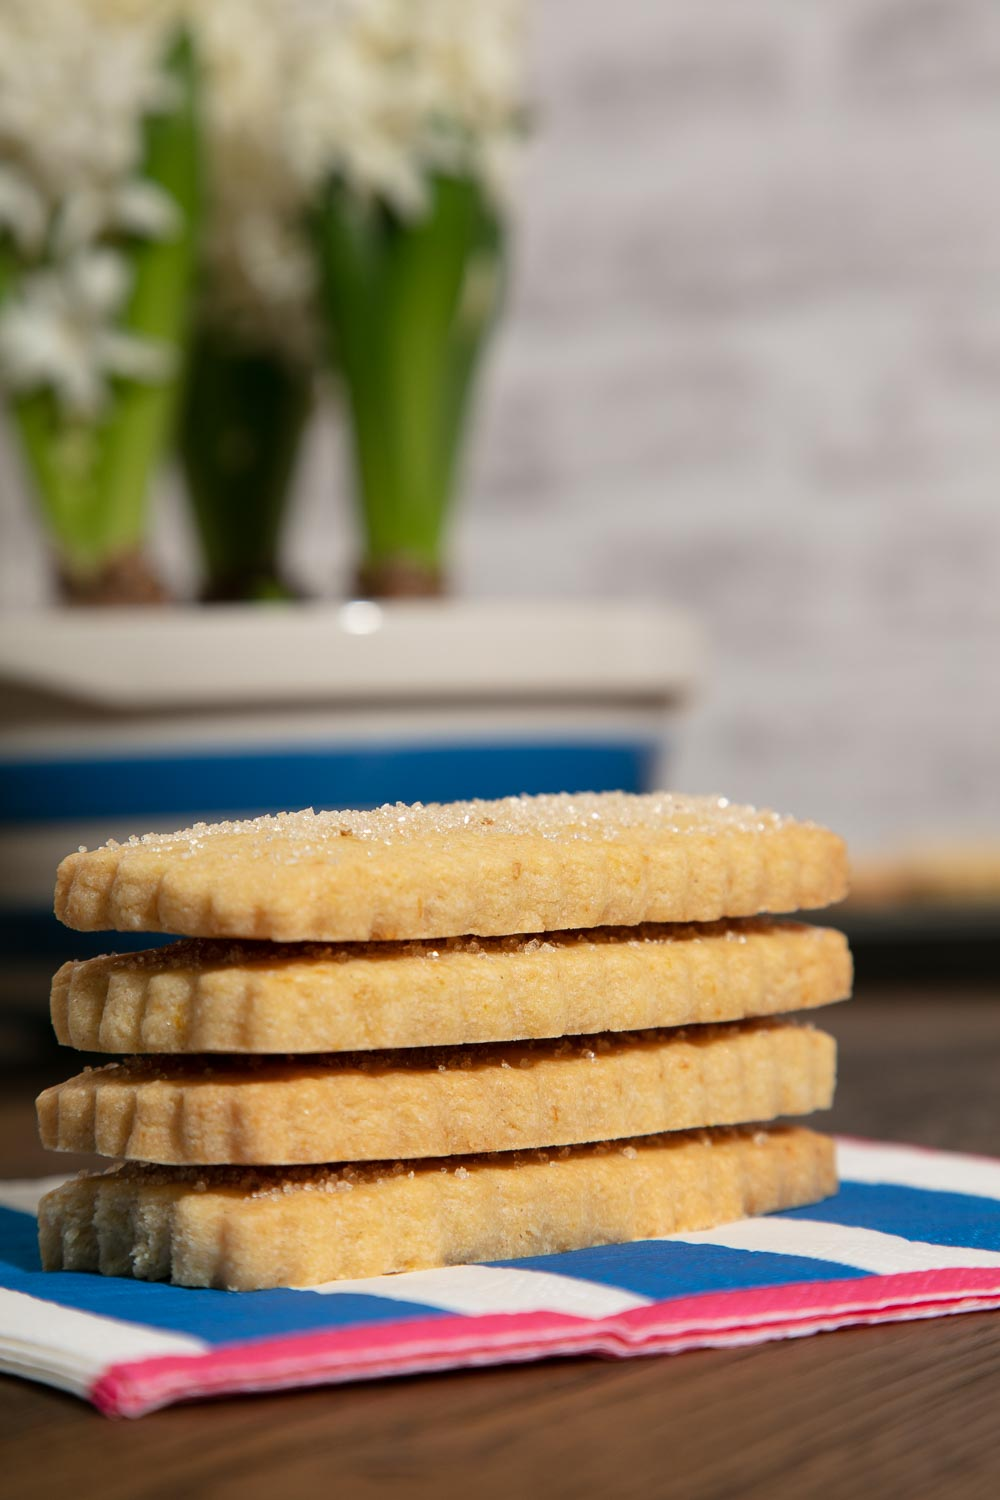 A stack of shortbread biscuits on a striped napkin.